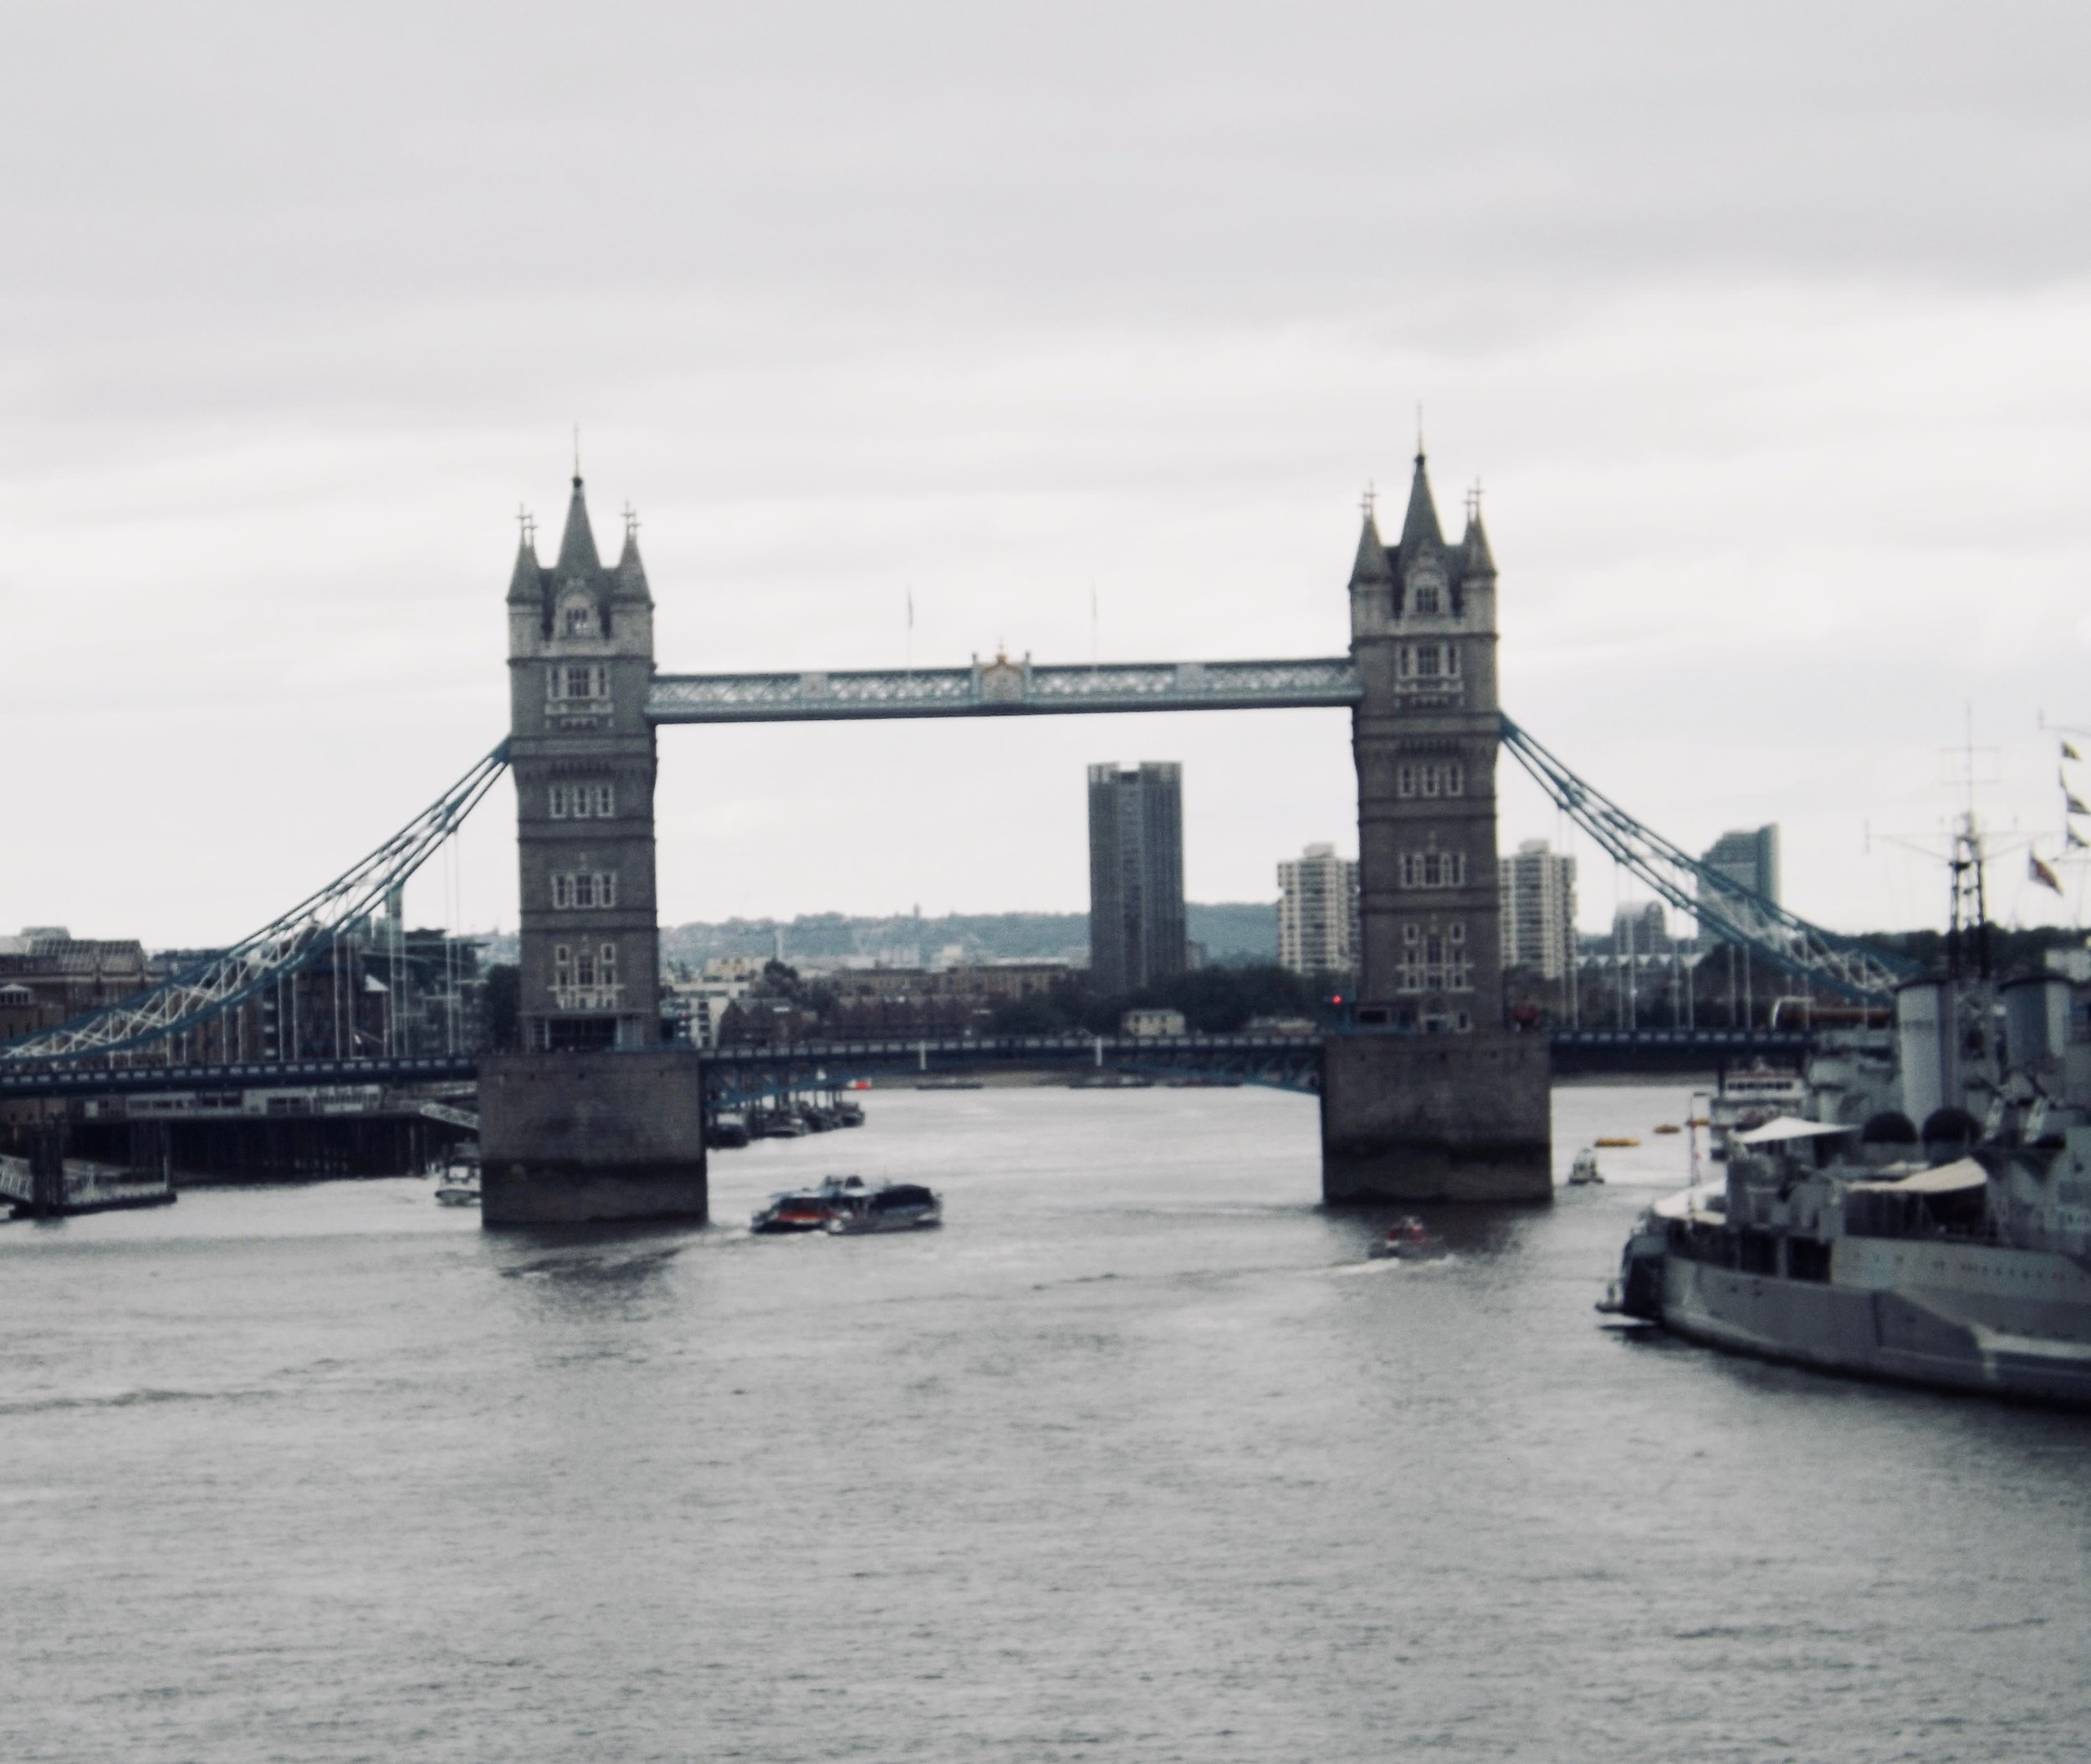 A Summer in London | I spent a part of my summer semester abroad in London. Read more to learn about my amazing experience.